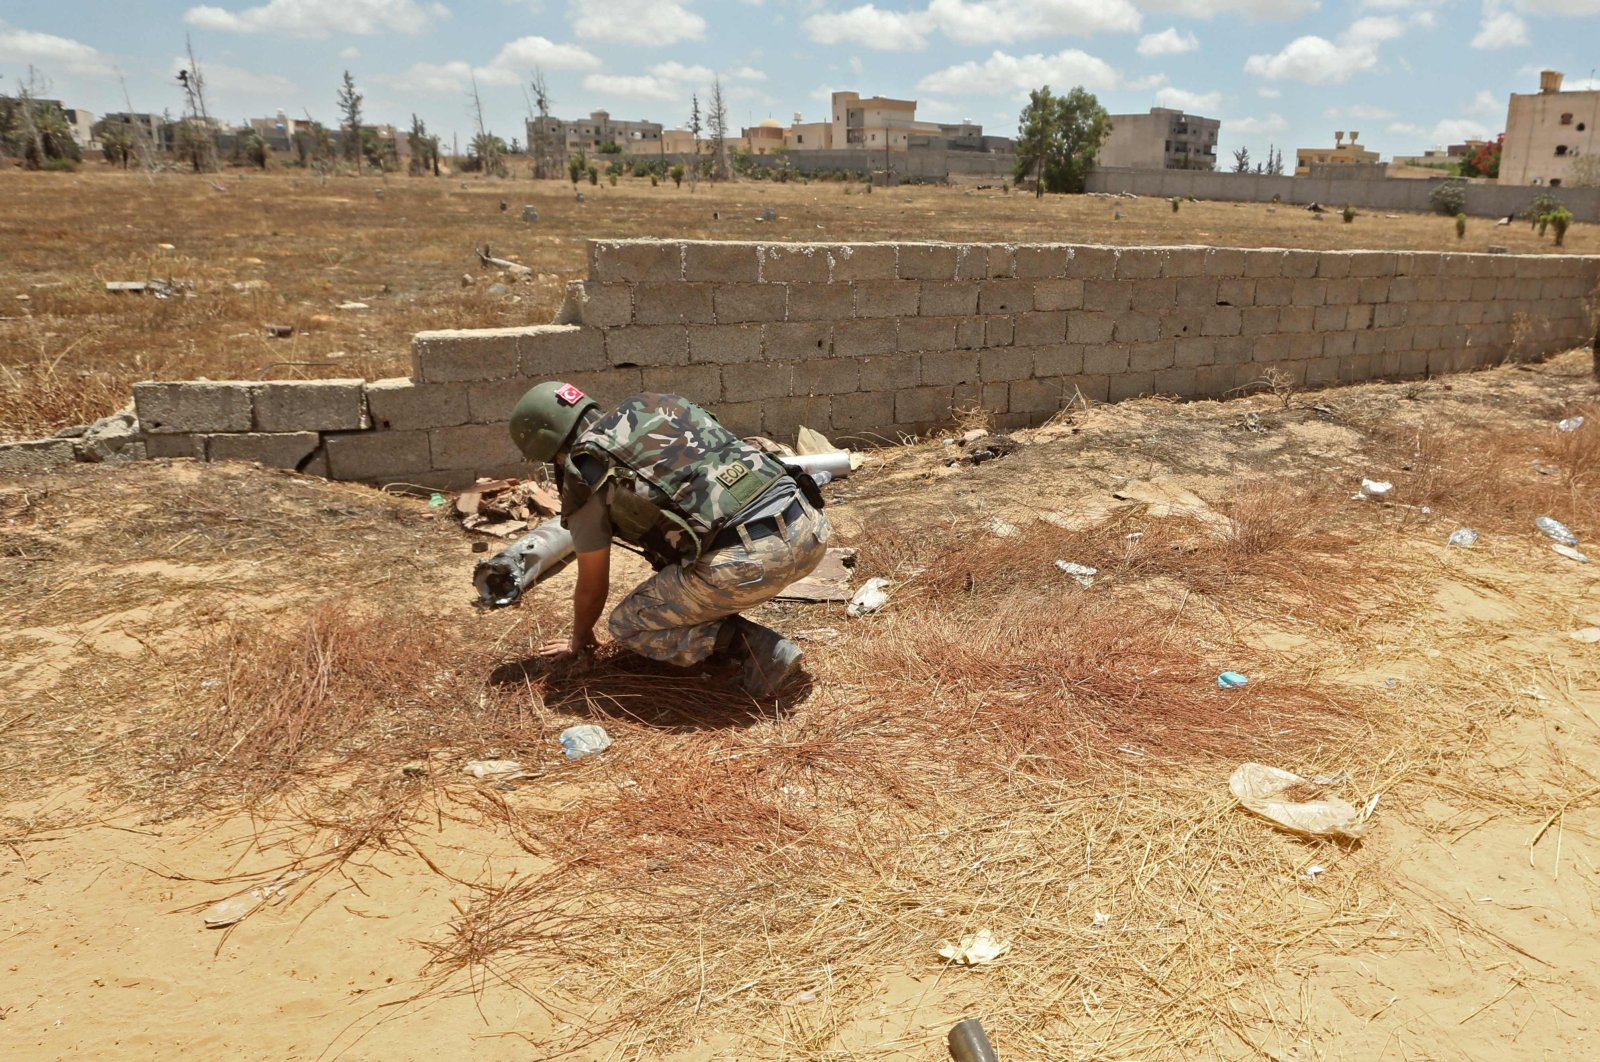 A Turkish de-miner takes part in the clearance of unexploded ordnance in the area of Salah al-Din, south of the Libyan capital Tripoli, June 15, 2020. (AFP Photo)